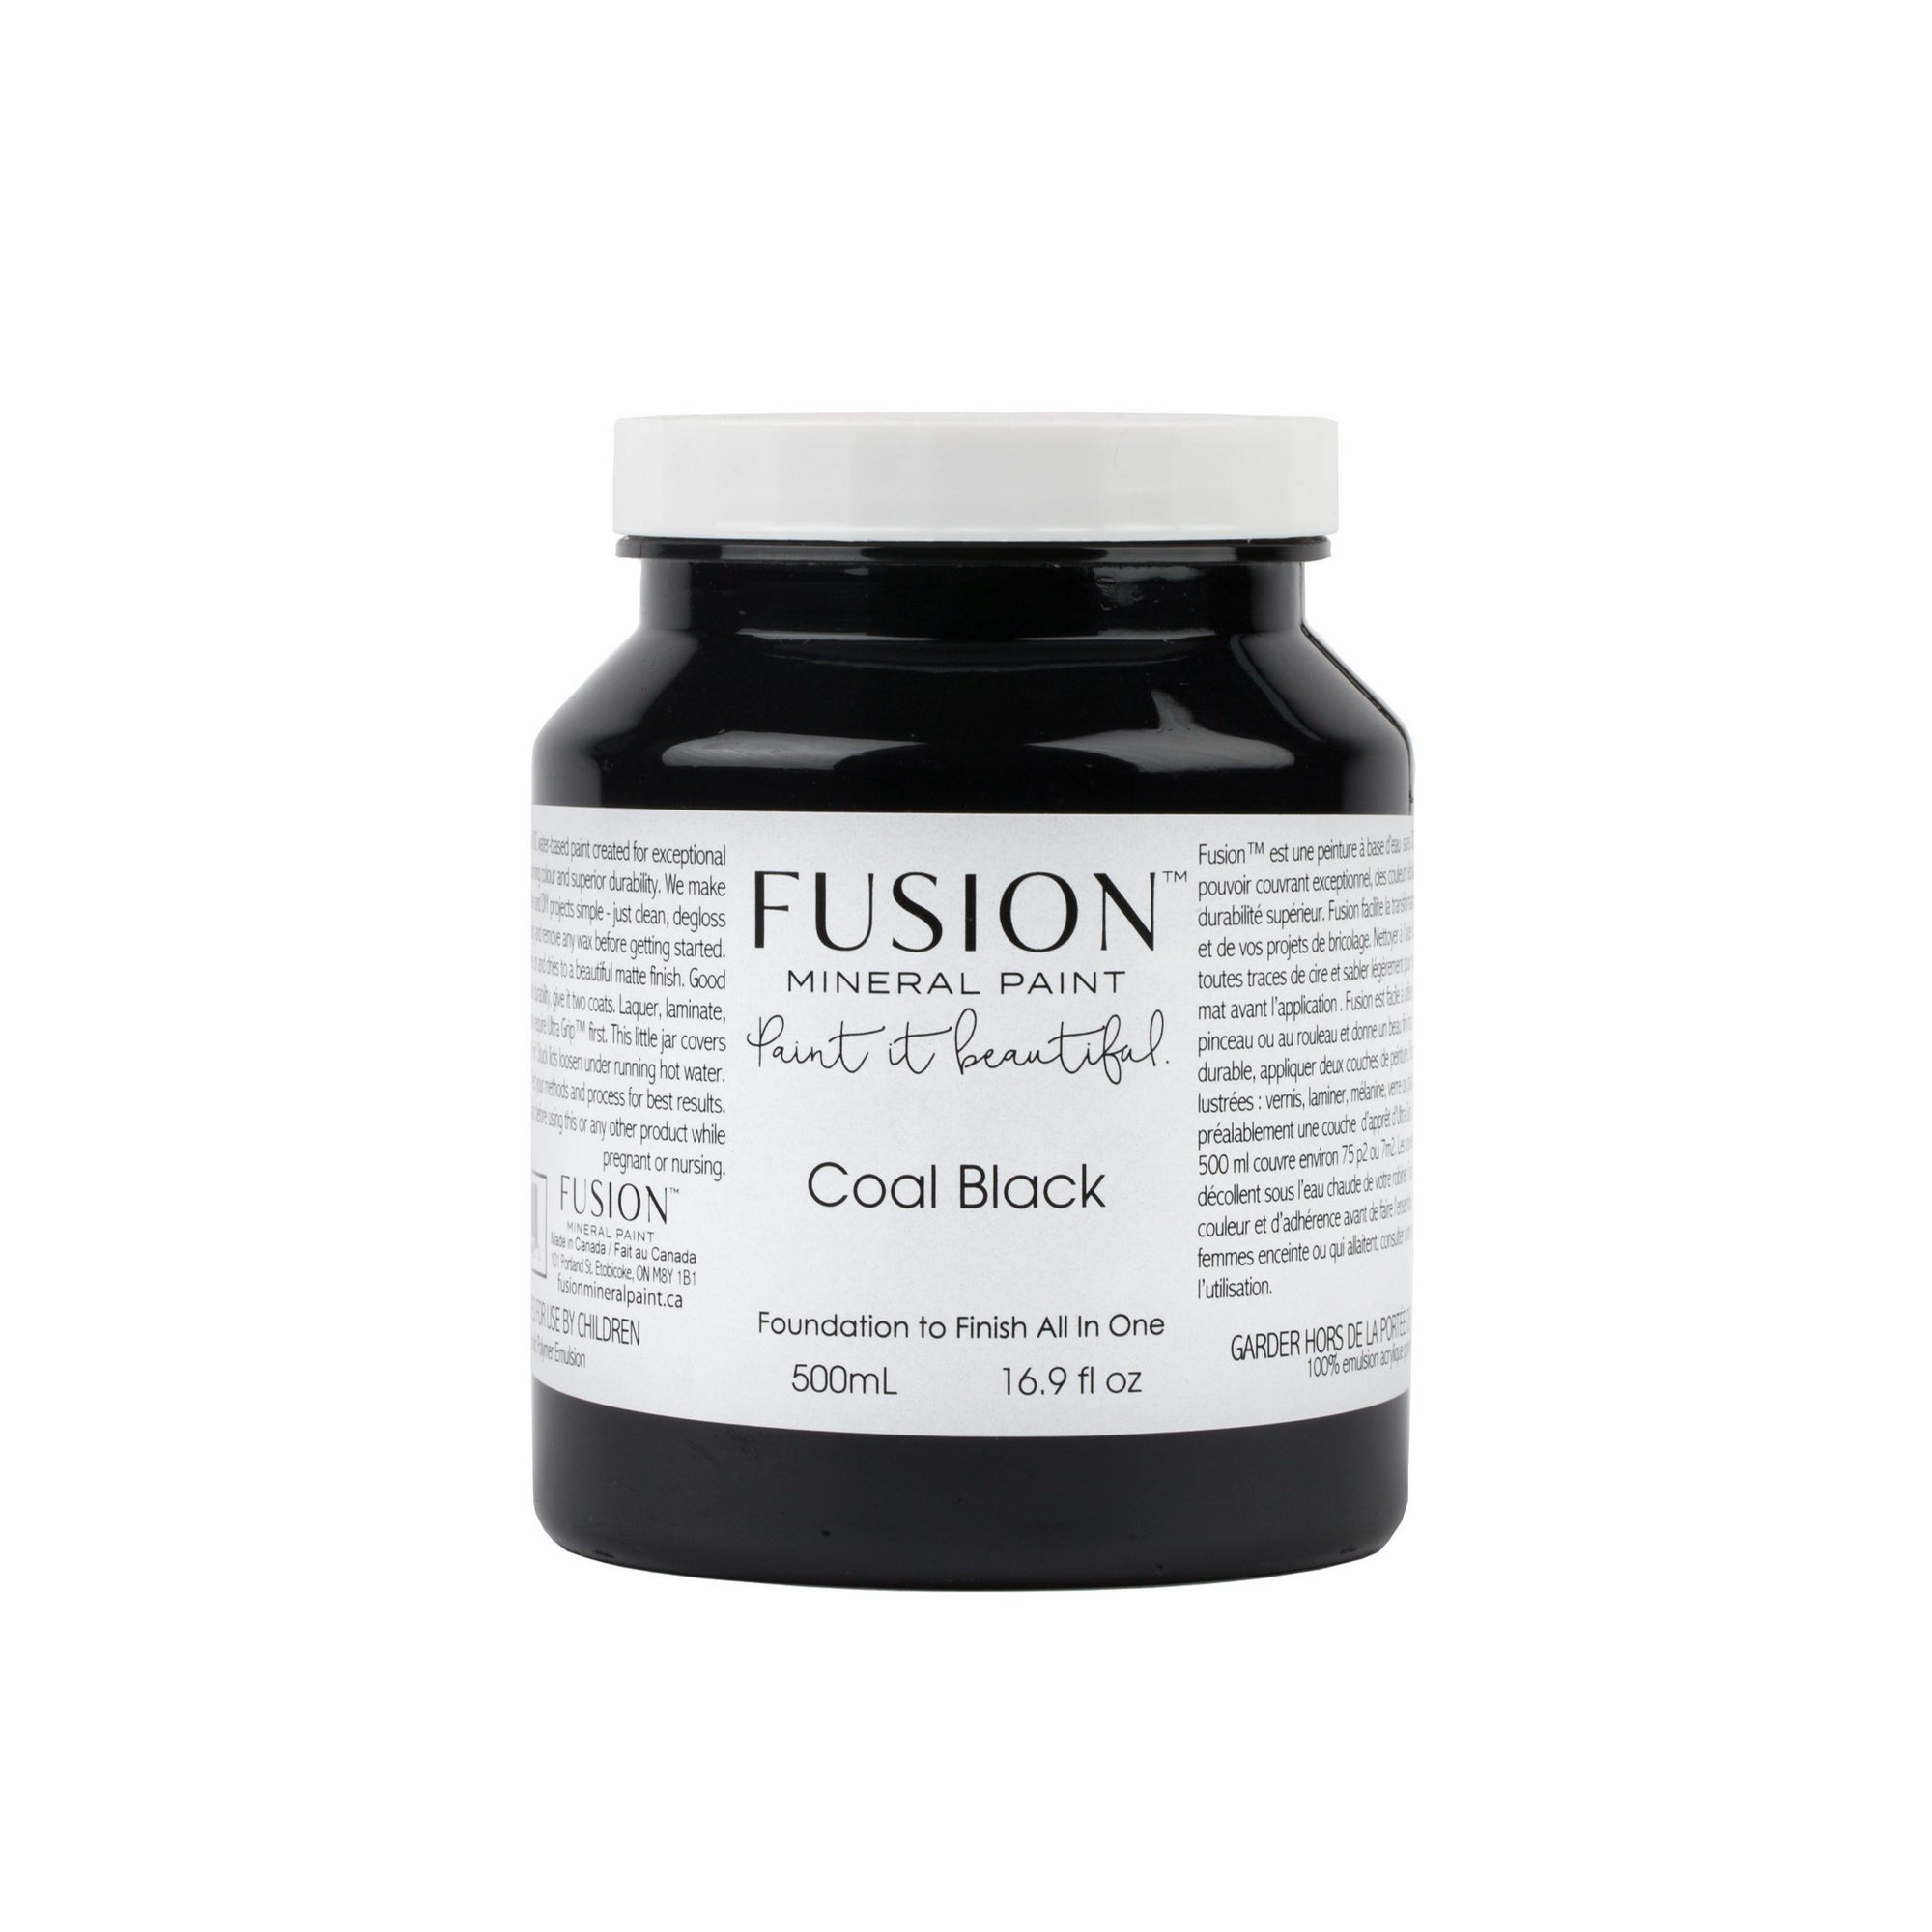 Fusion Mineral Paint Coal Black - Farmhouse Inspired